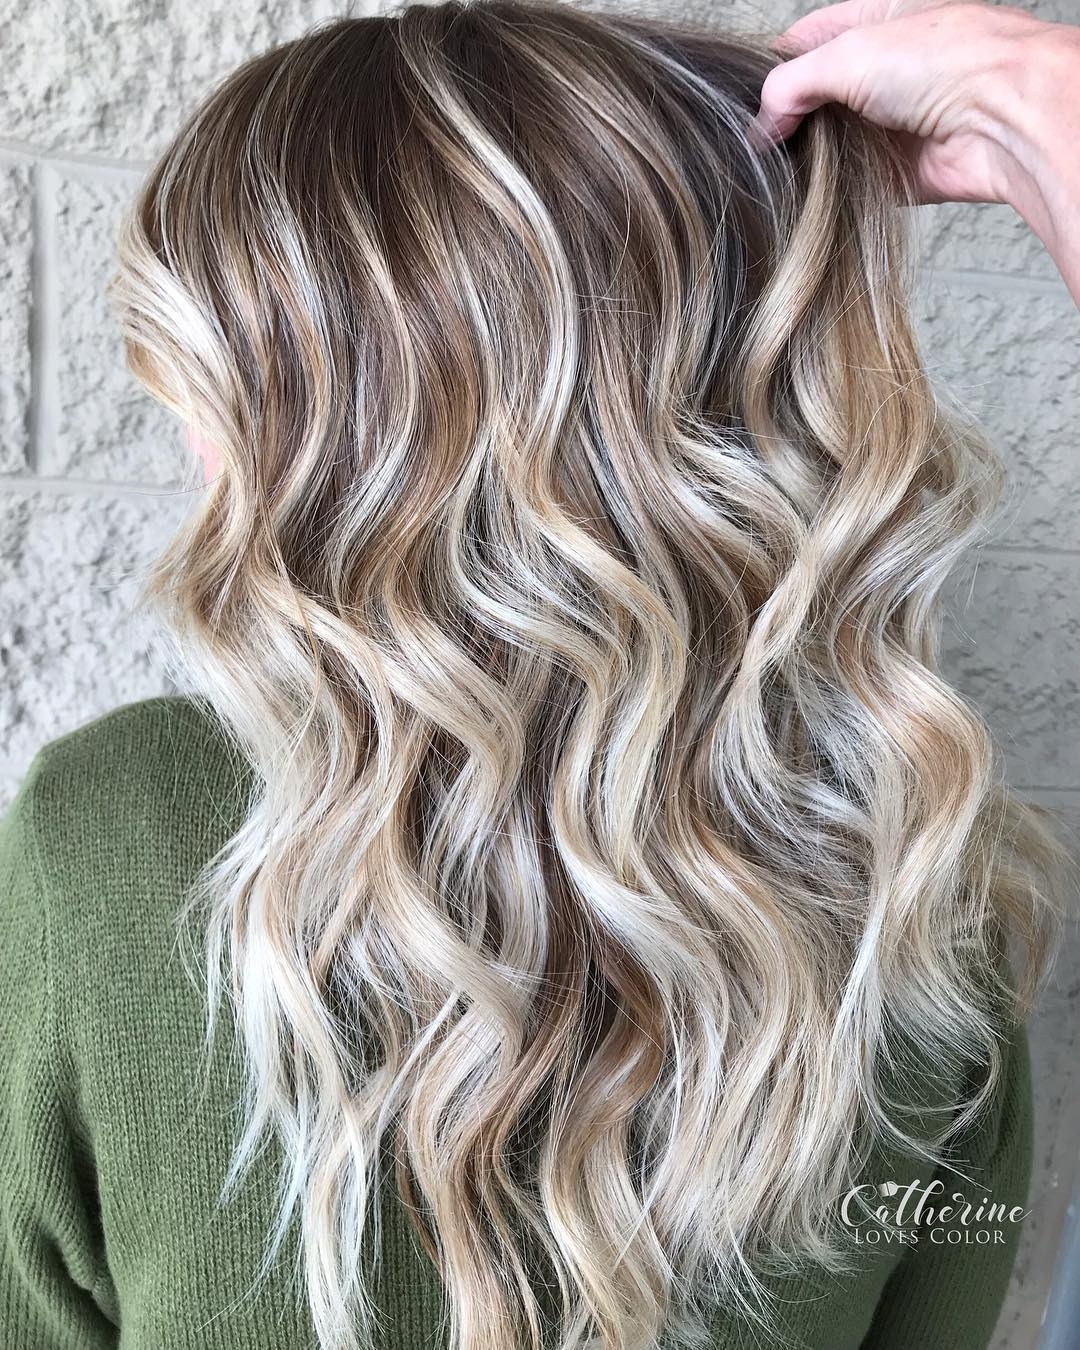 20 Caramel Highlights For Dark Brown Hair 2021 – Short Regarding Short Brown Hairstyles With Subtle Highlights (View 13 of 20)